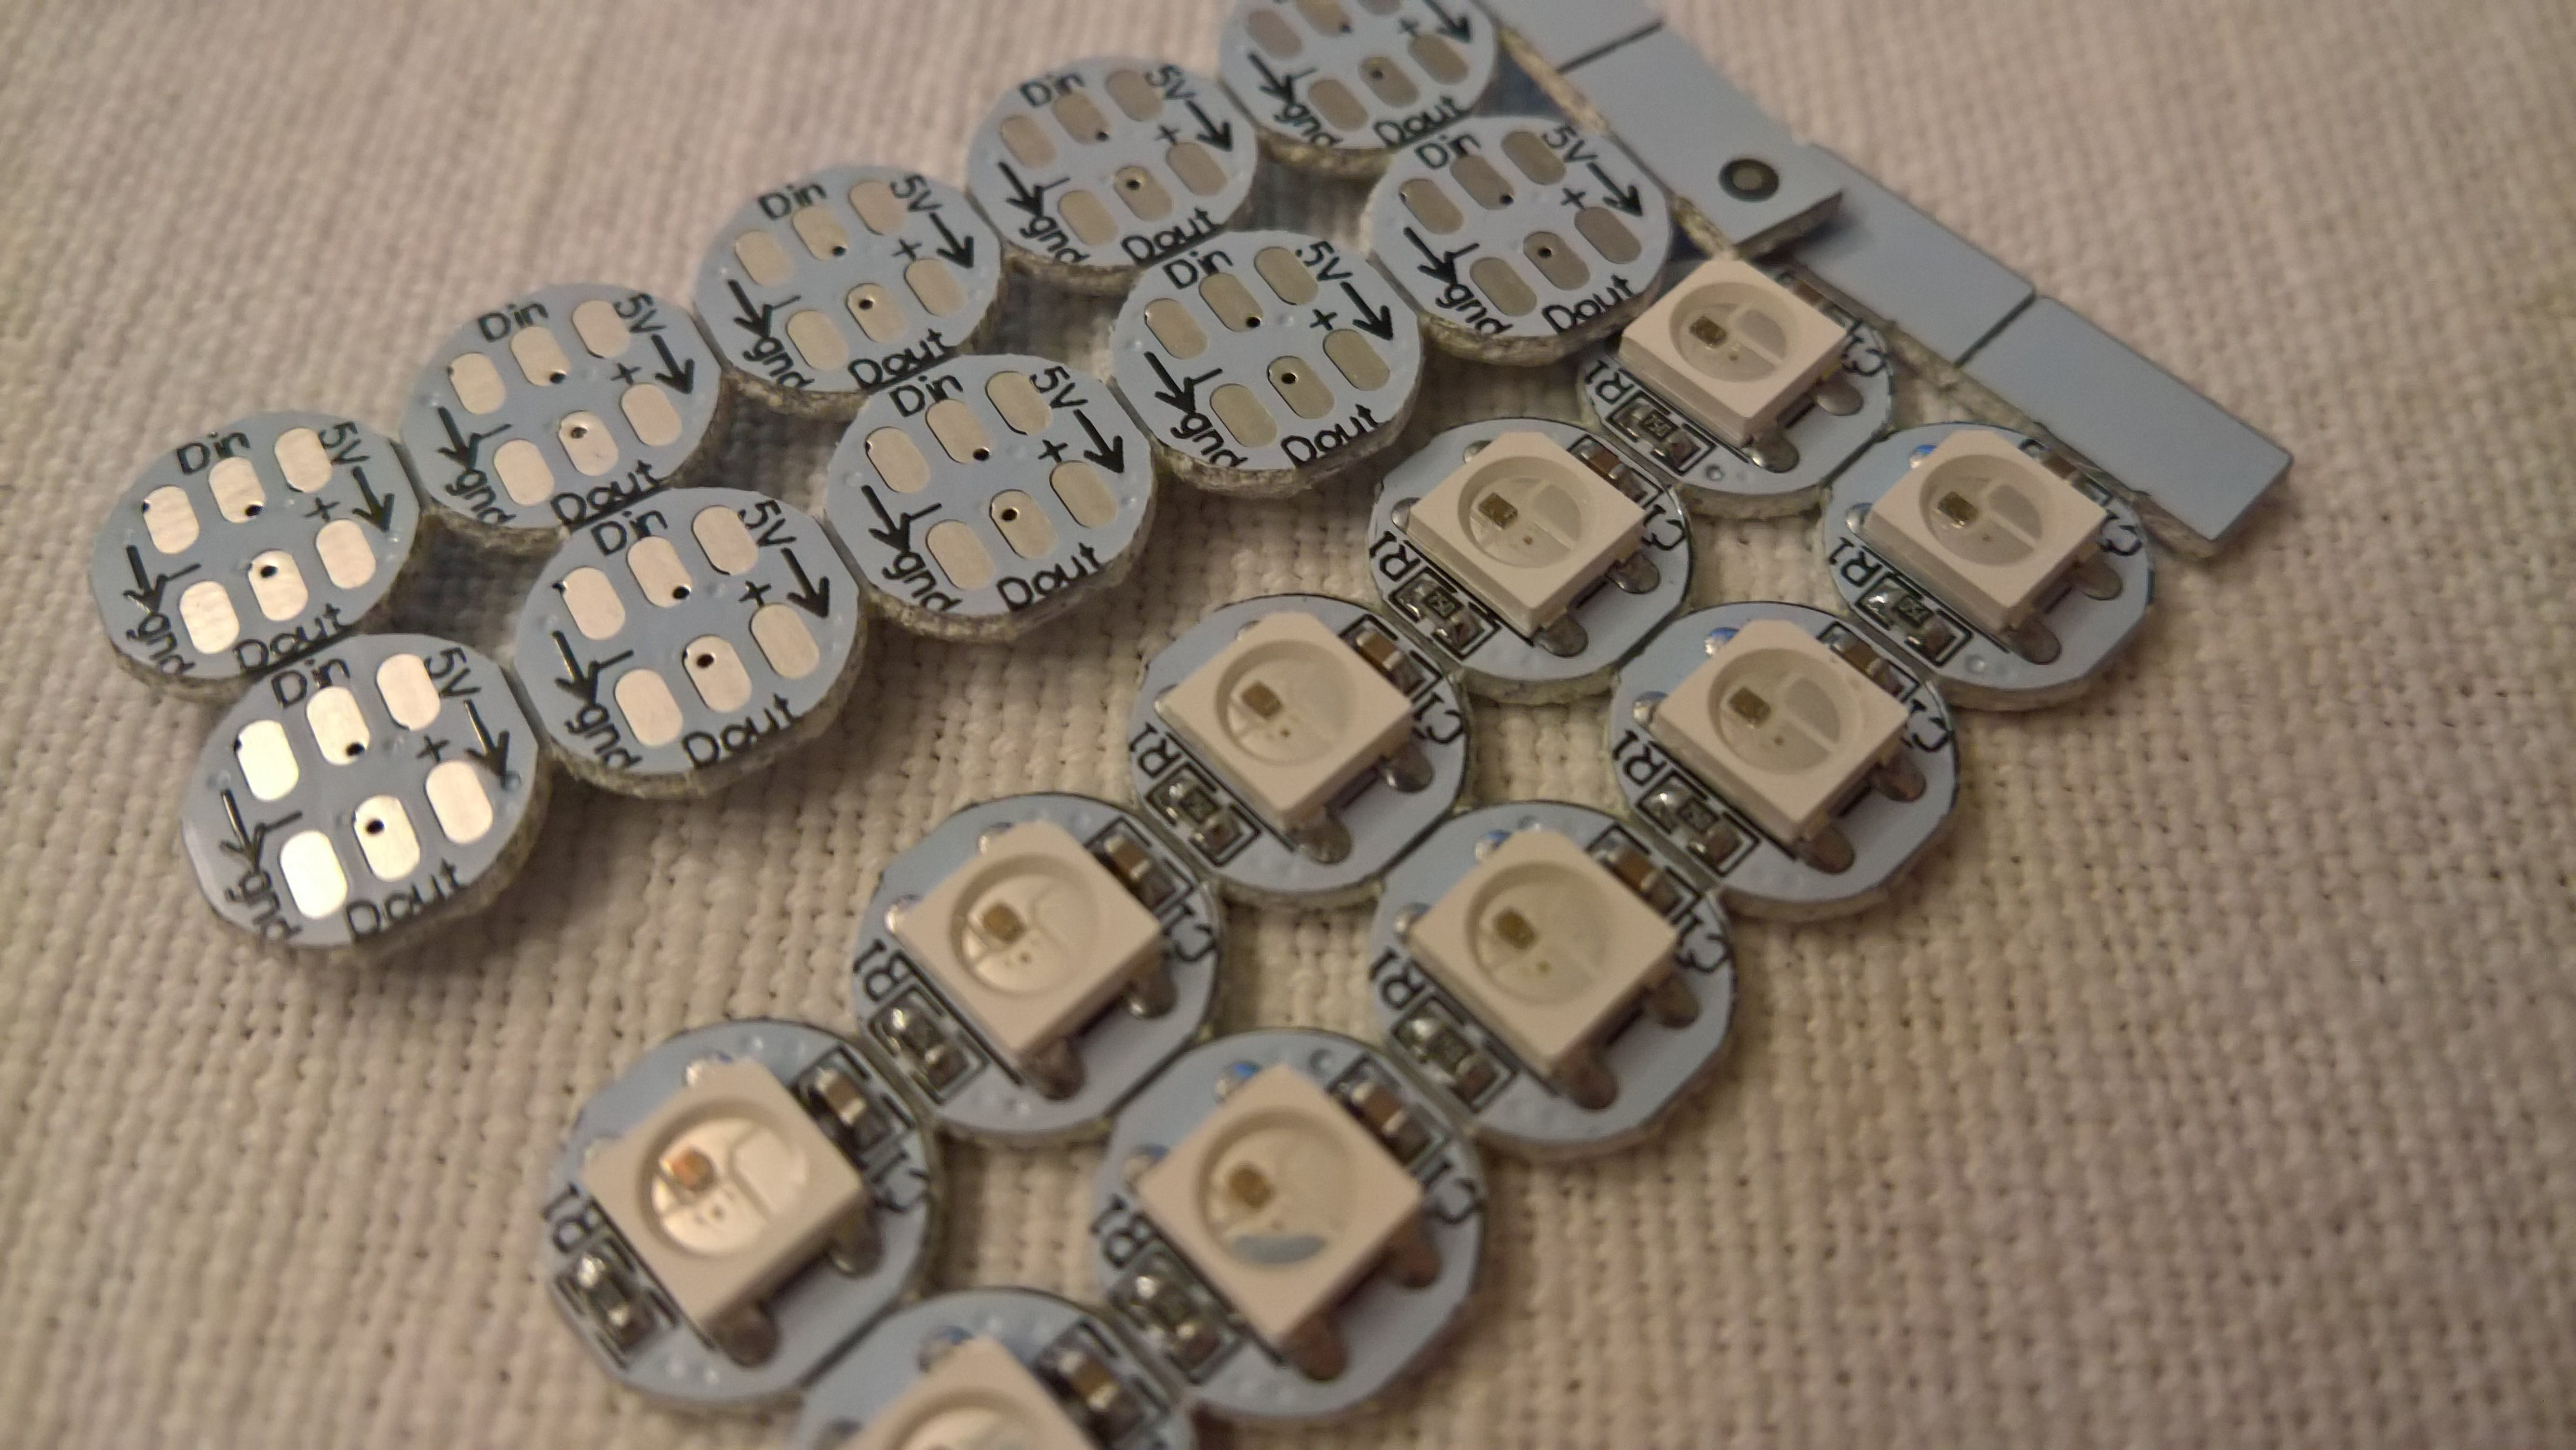 The individual WS2812 controlled LEDs I got came in sections of 10, easily cuttable